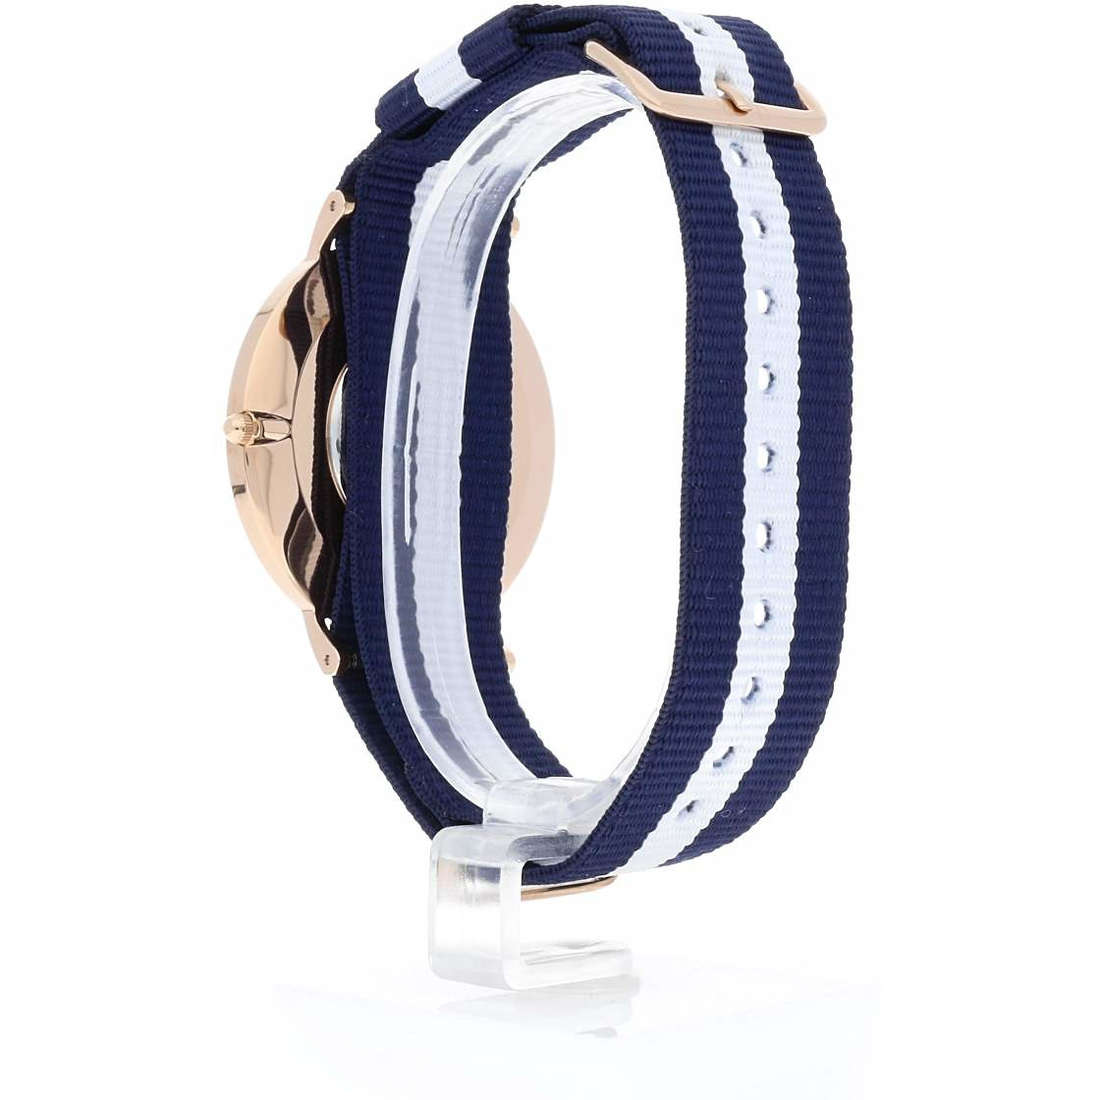 offers watches unisex Daniel Wellington DW00100004